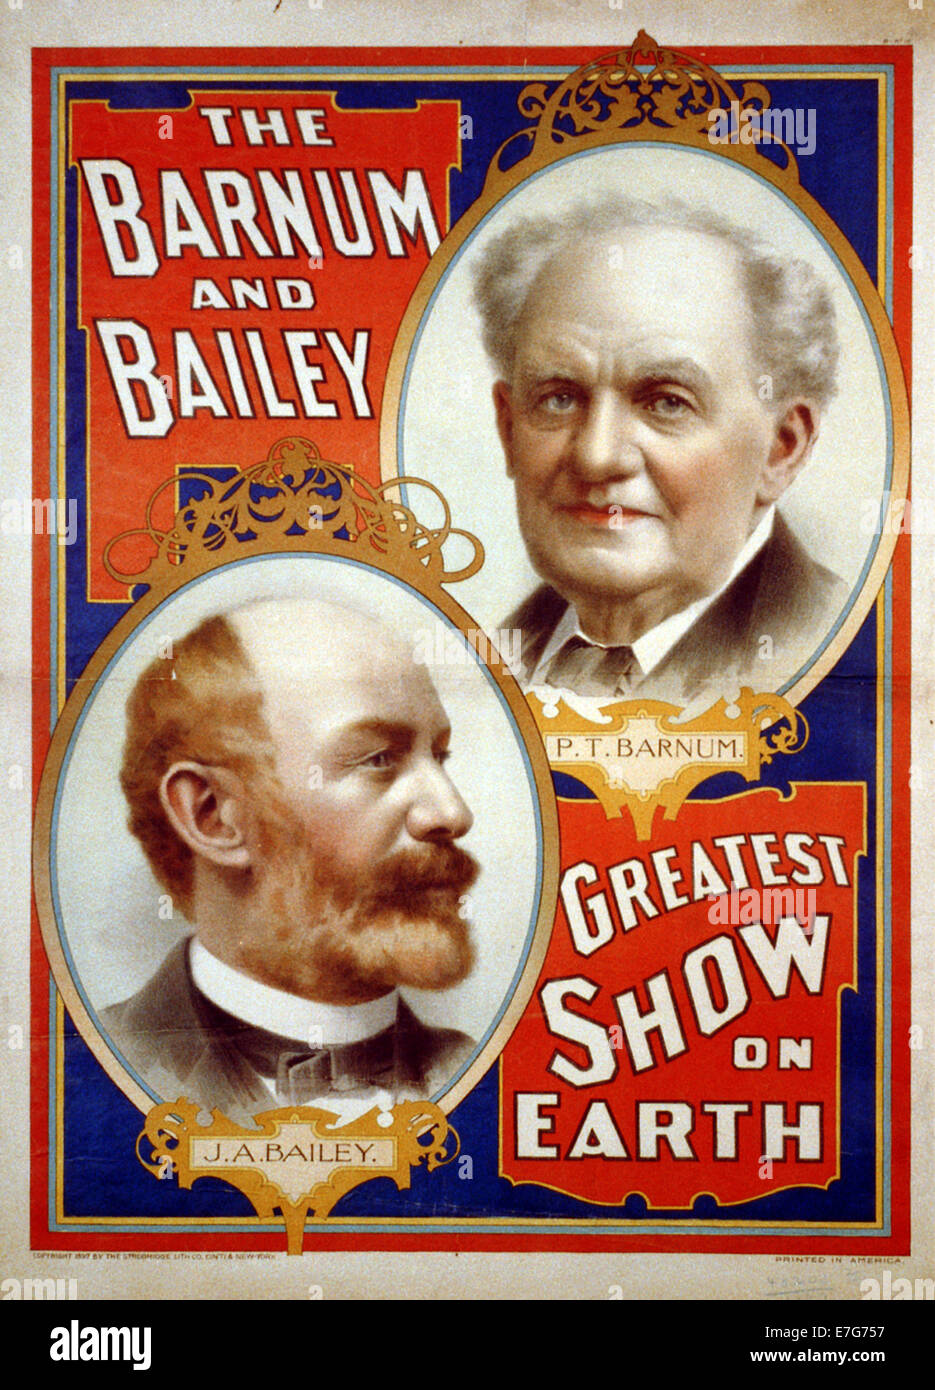 the greatest show on earth a biography of p t barnum A biography of pt barnum, founder of barnum and bailey circus  in 1871, he  created the greatest show on earth a circus, menagerie and collection of side.